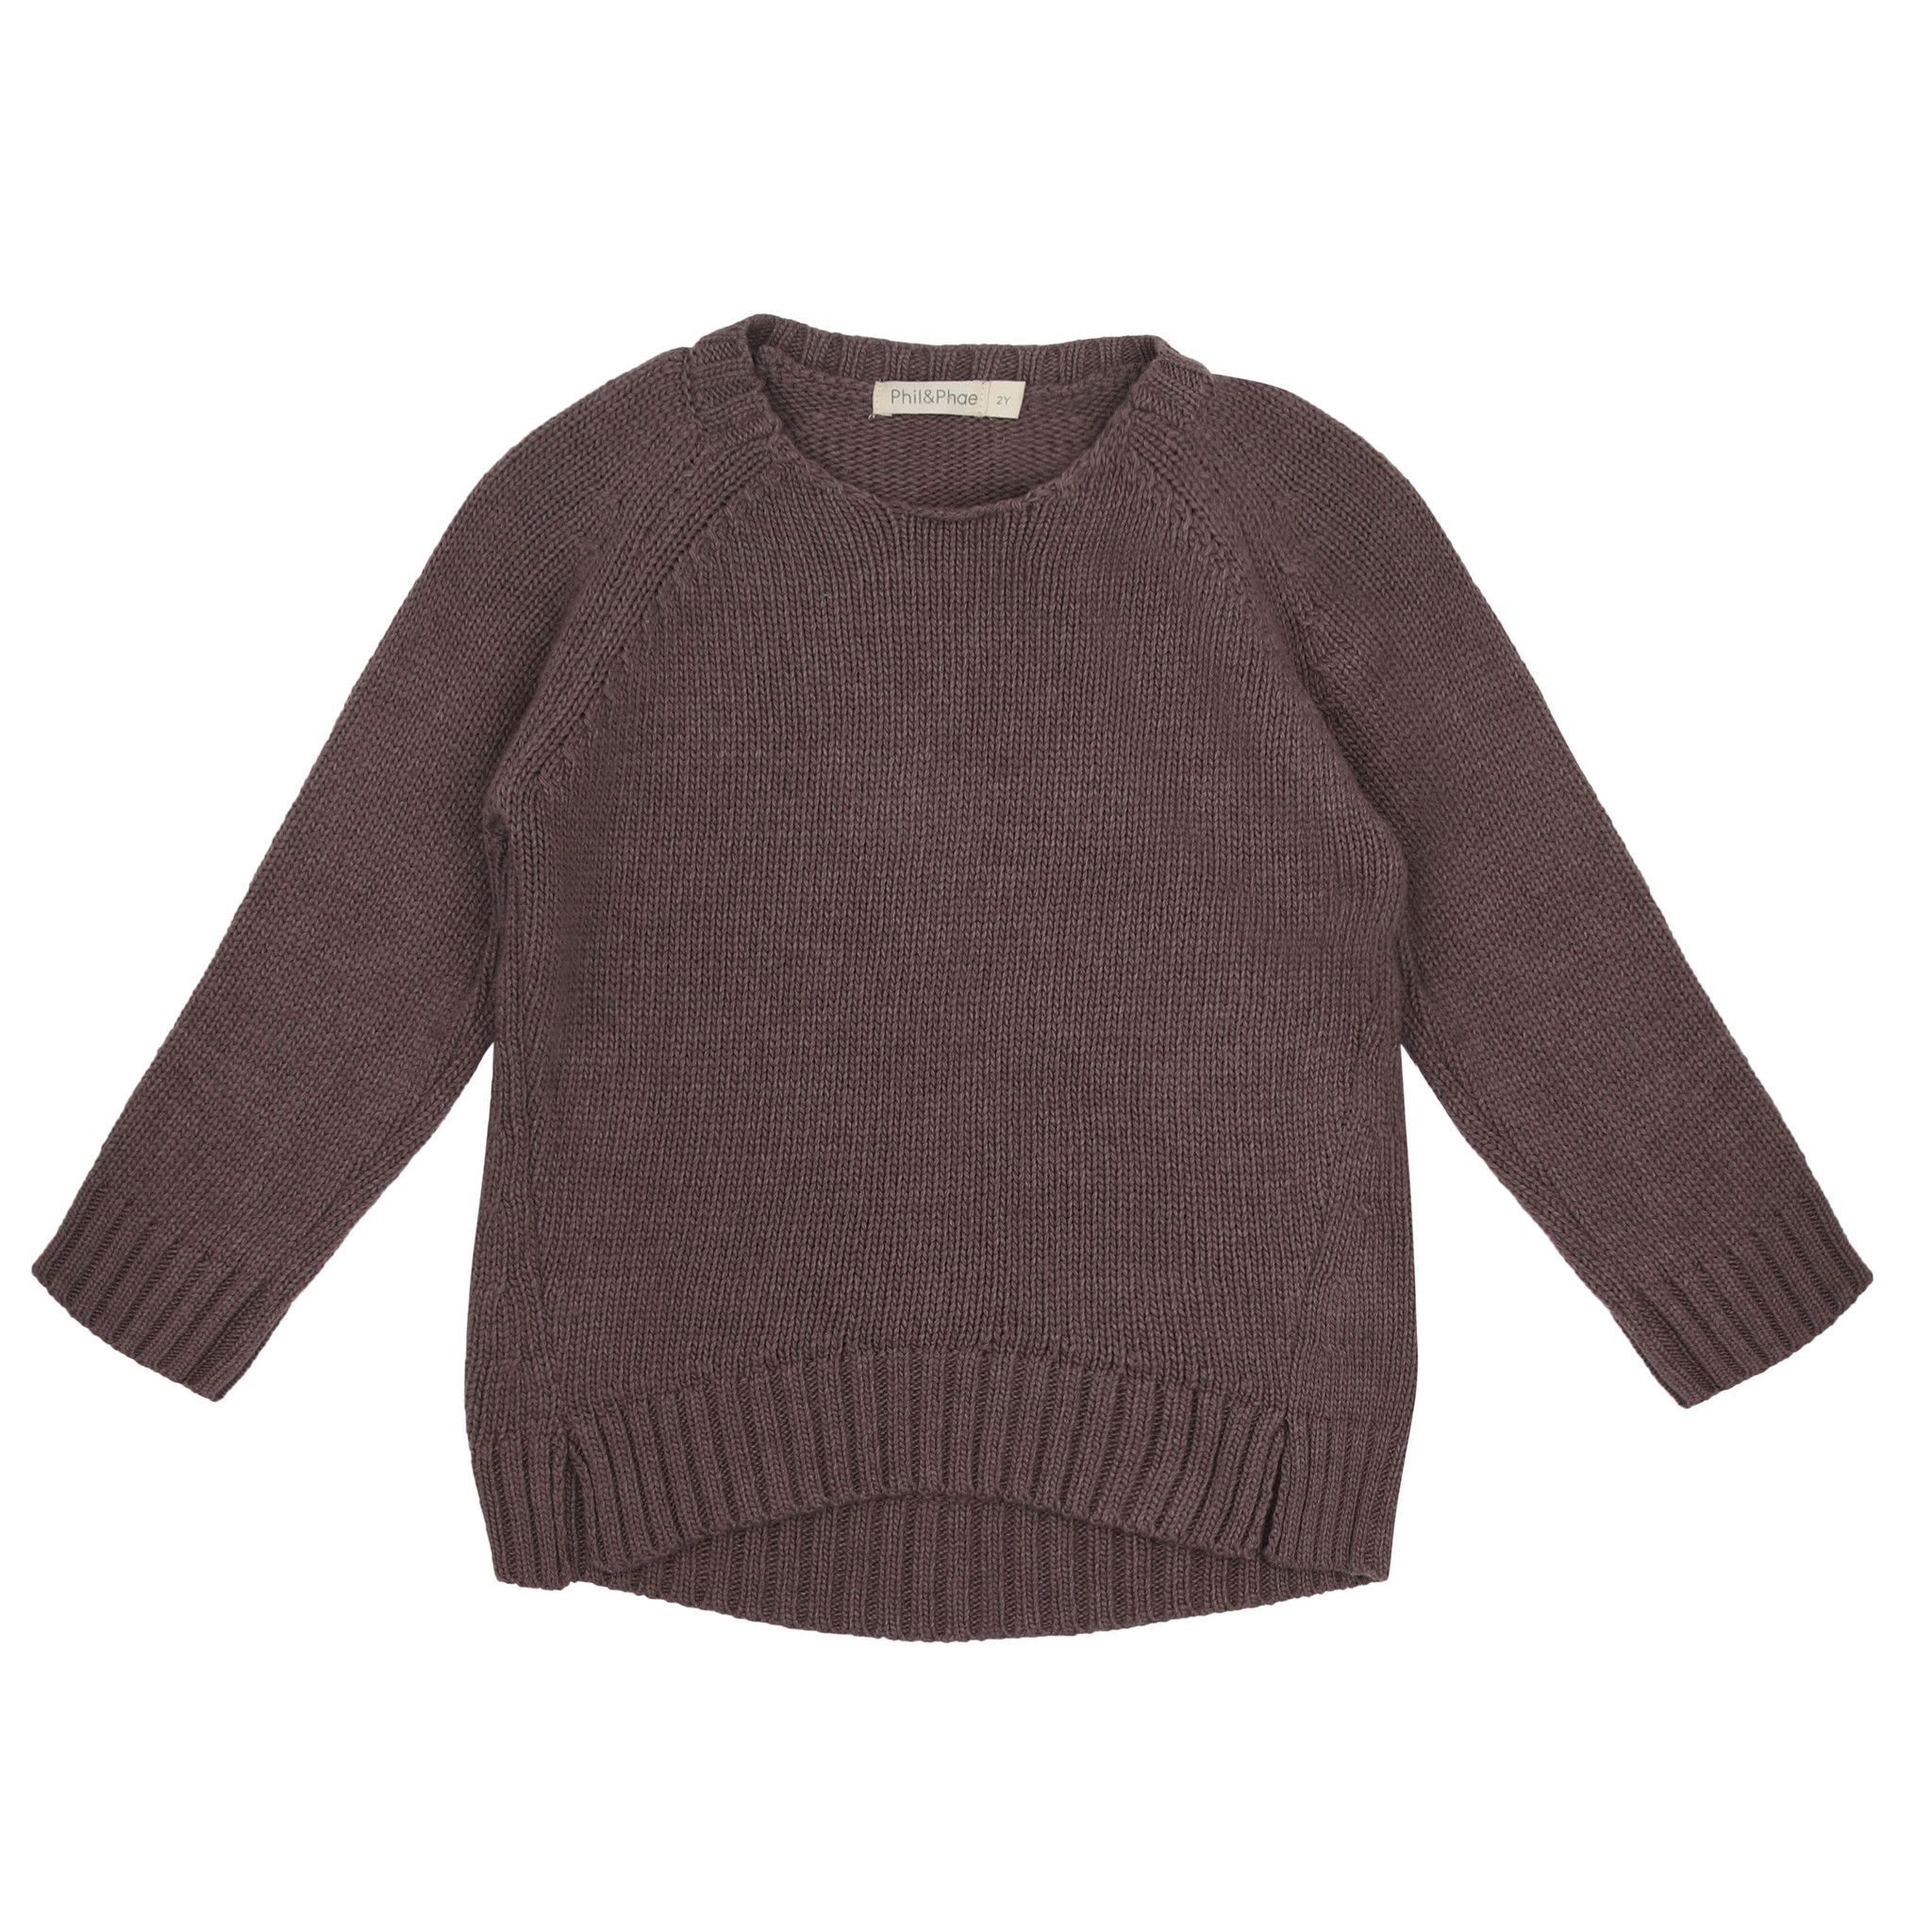 Cashmere blend knit sweater - Dried Lavender-1